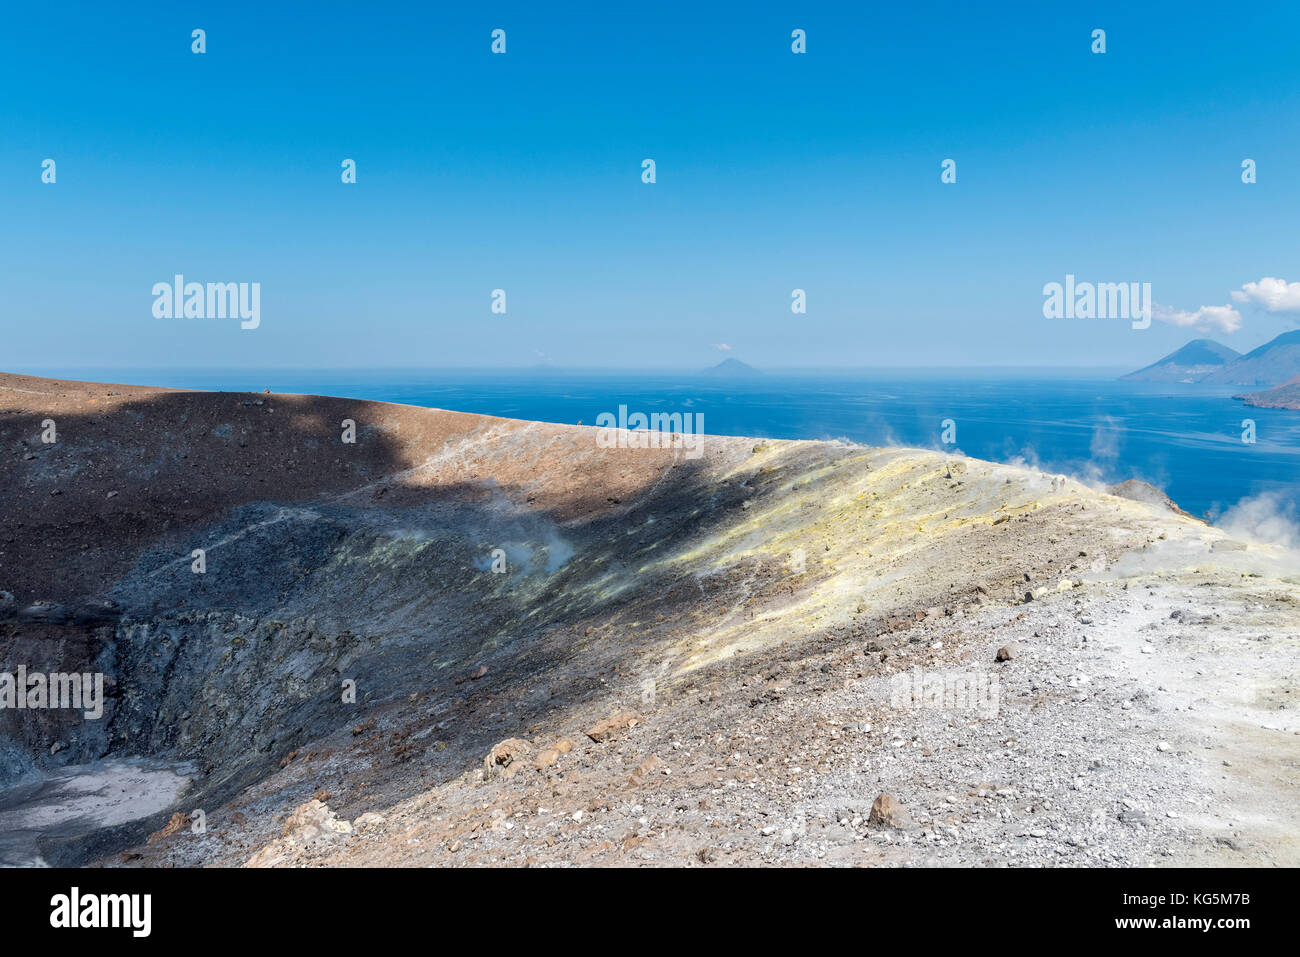 Volcano, Messina district, Sicily, Italy, Europe. Sulfur fumaroles on the crater rim of Vulcano. Stock Photo